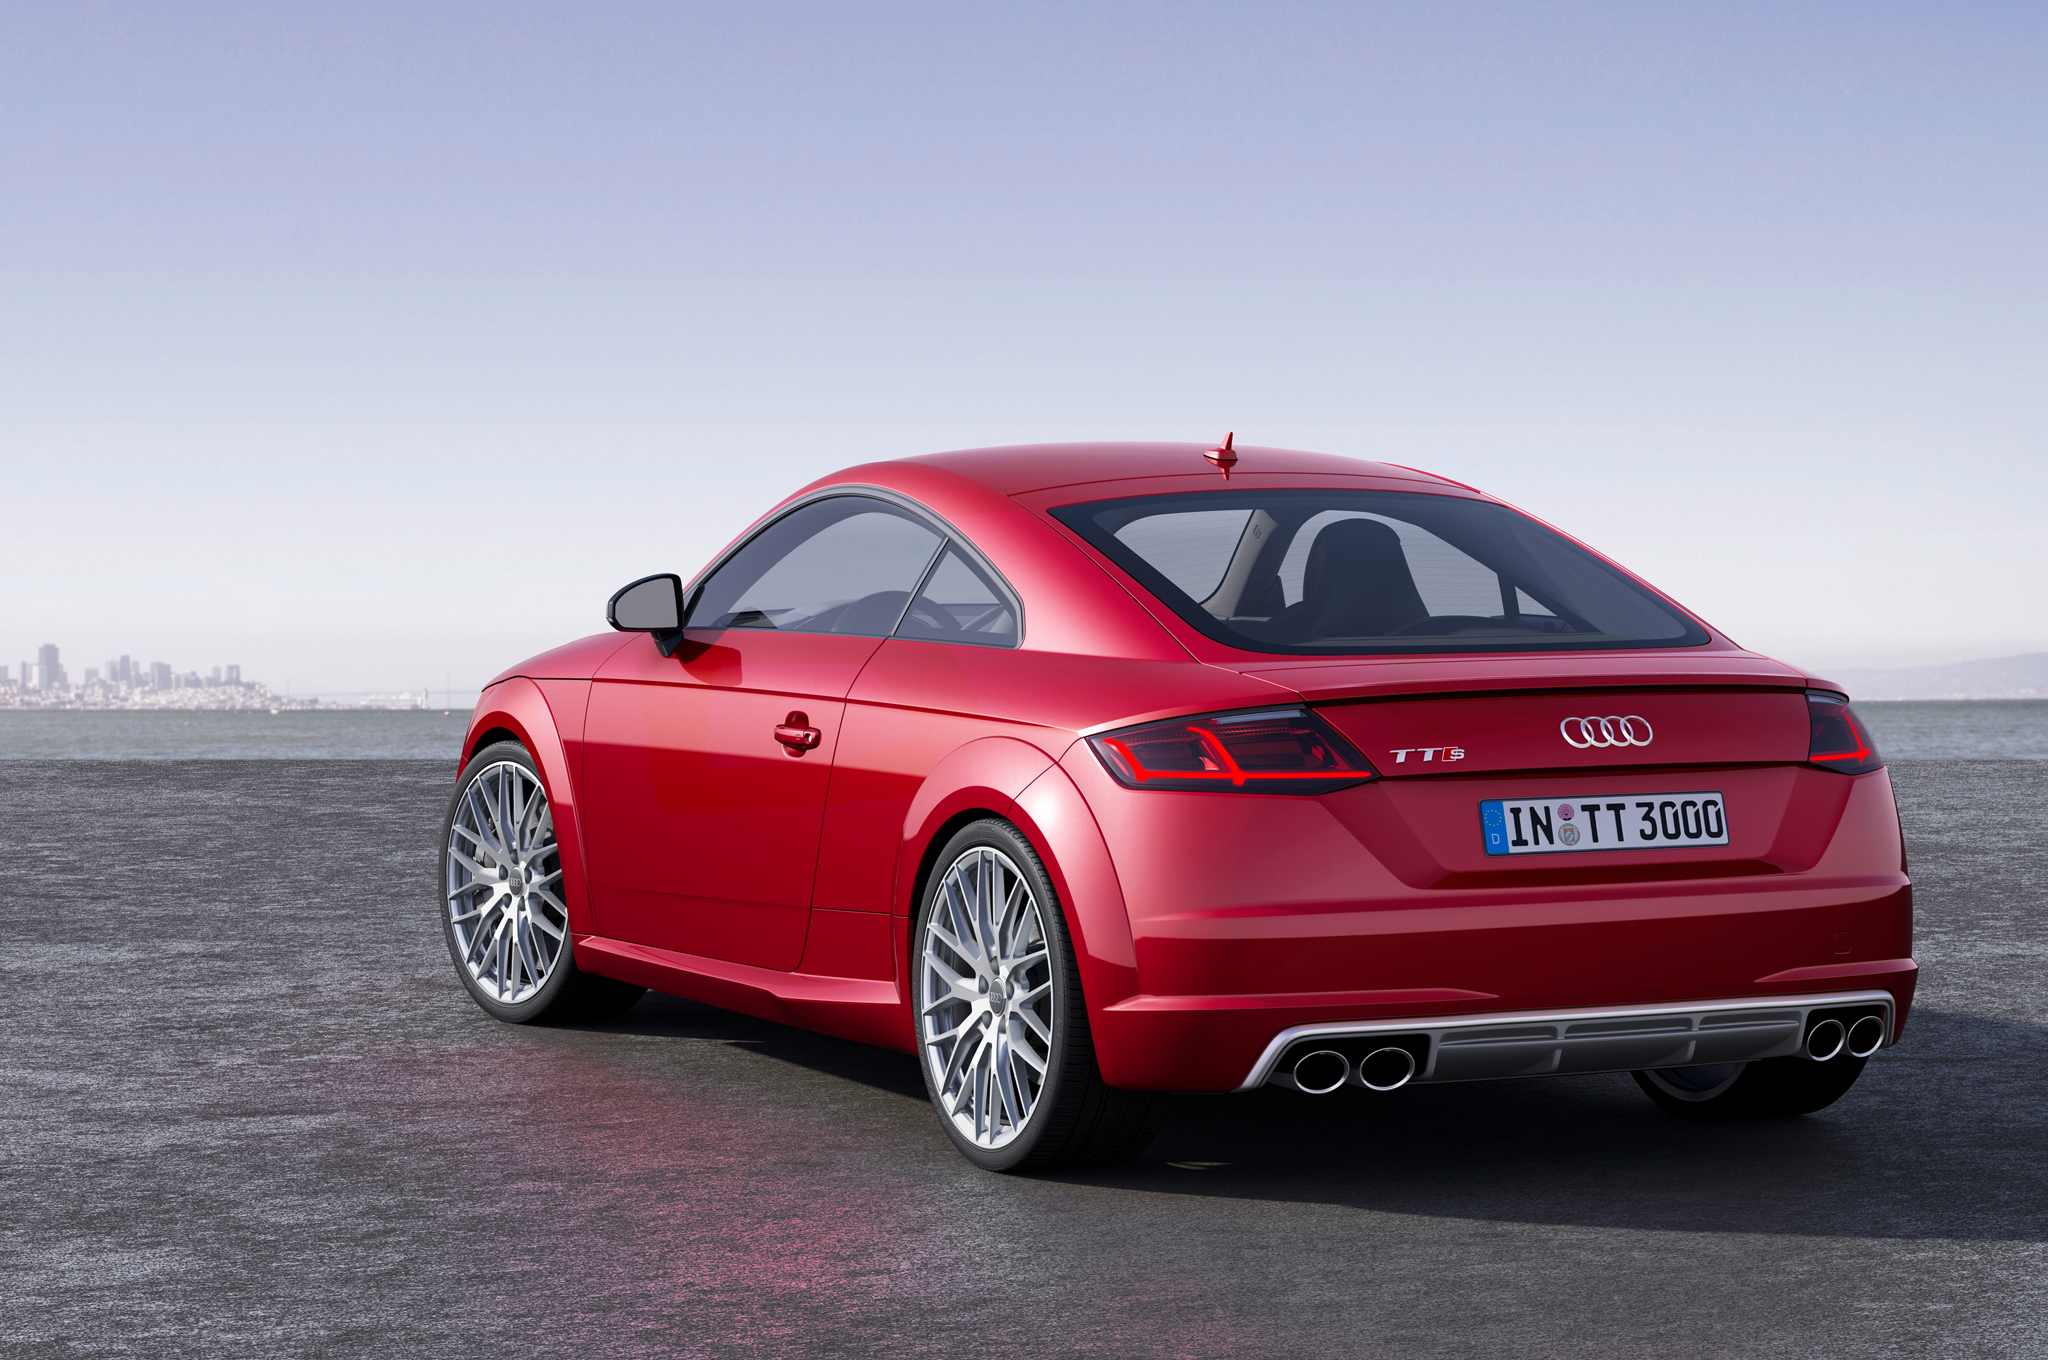 2016 audi tt - information and photos - zombiedrive